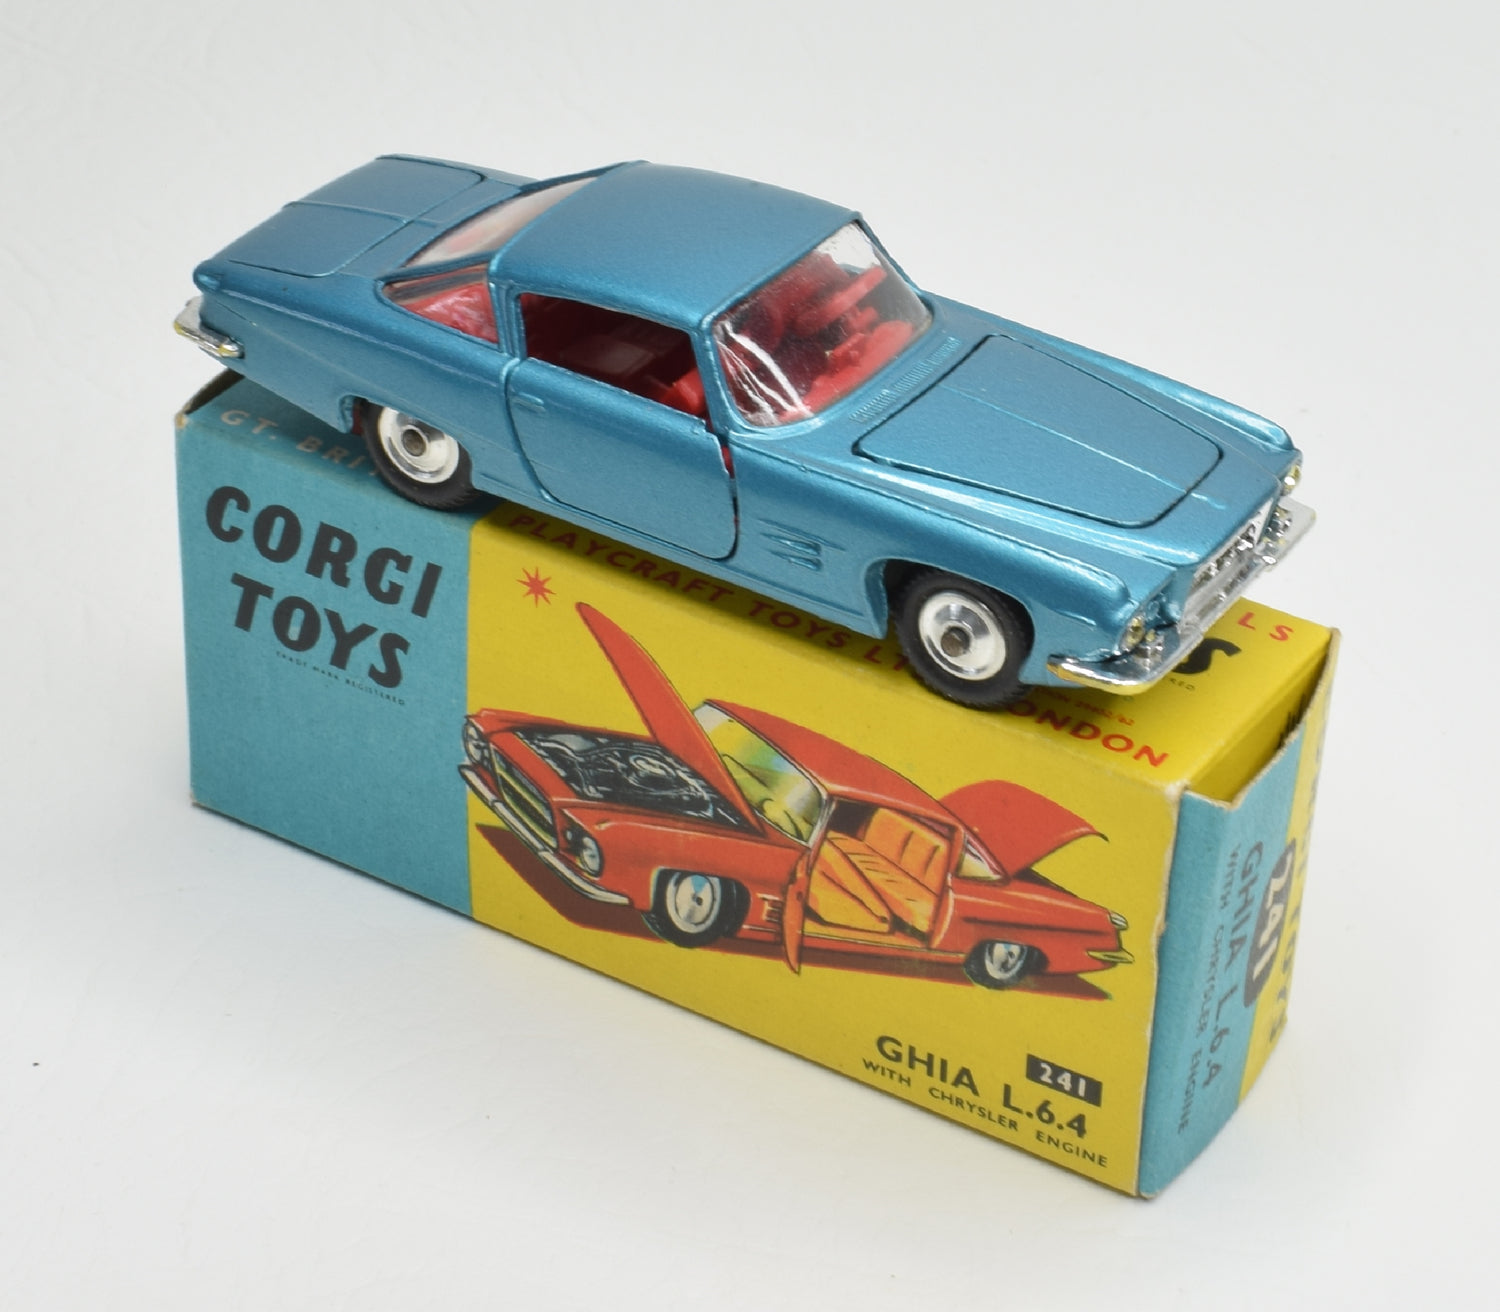 Corgi toys 241 Ghia 6.4 Virtually Mint/Boxed